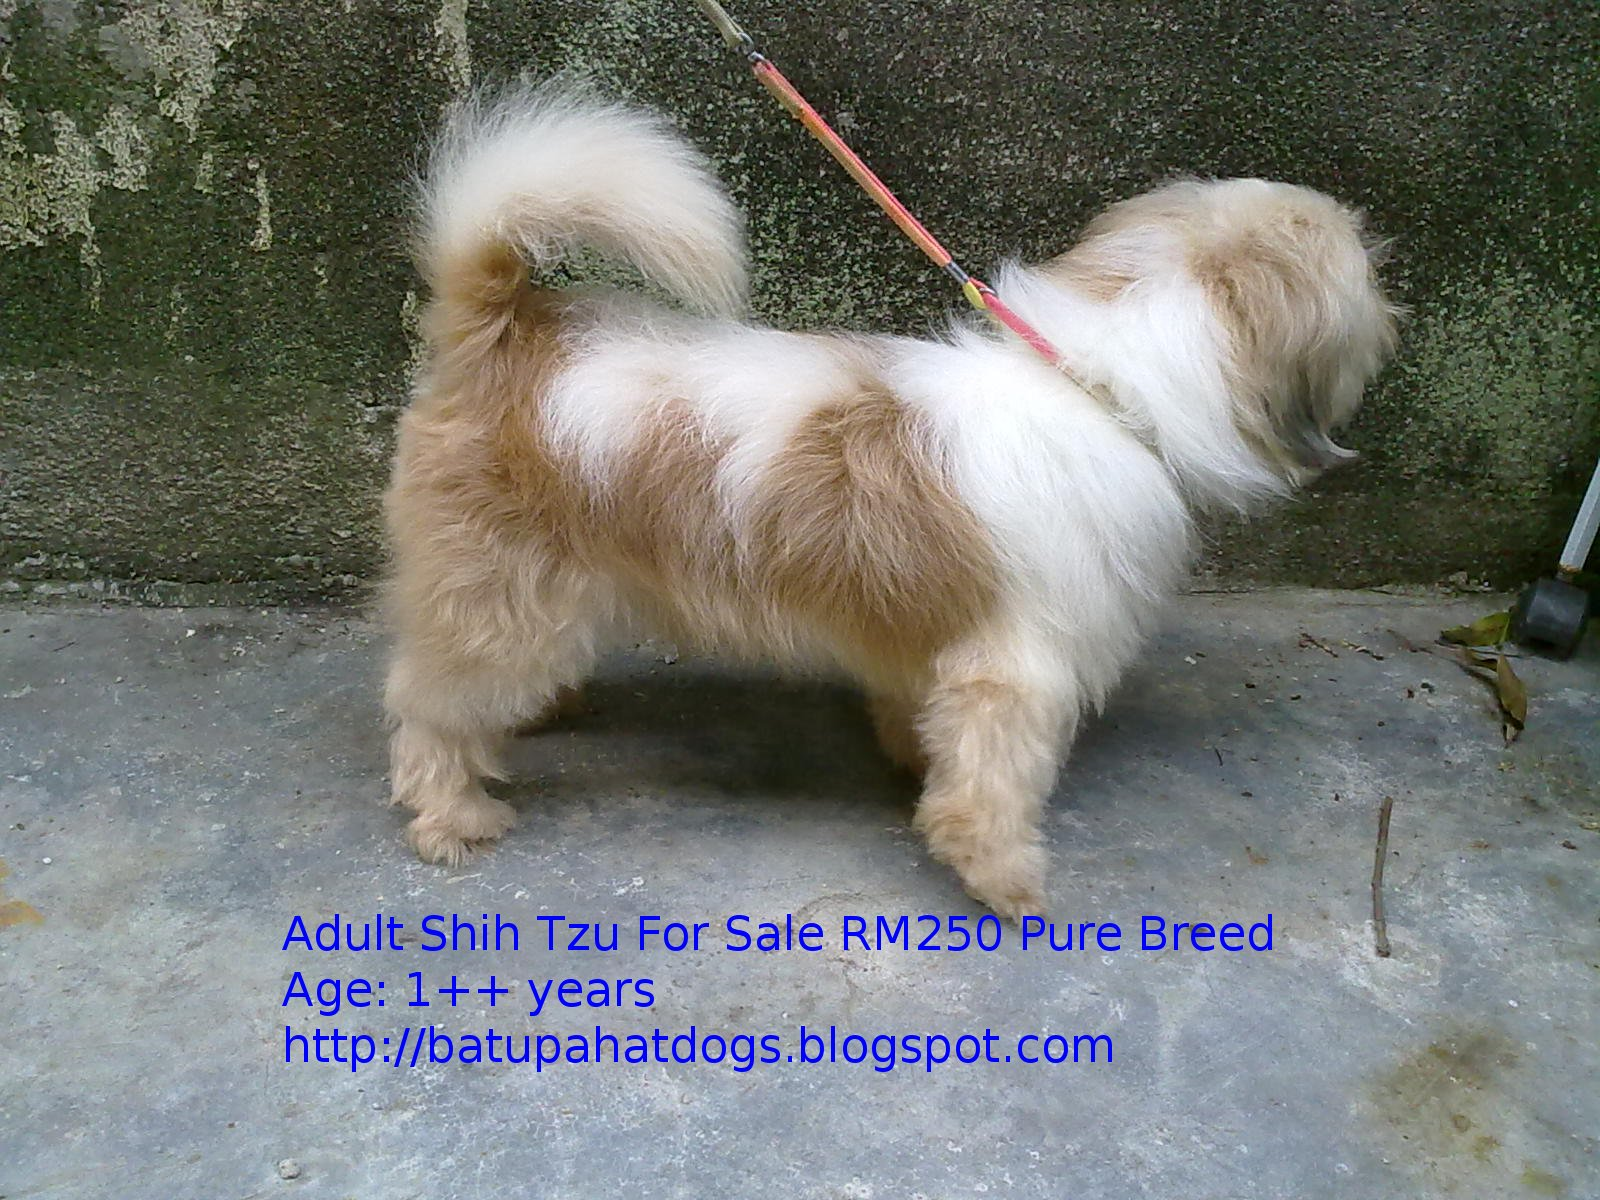 shih tzu adult for sale jpg 853x1280